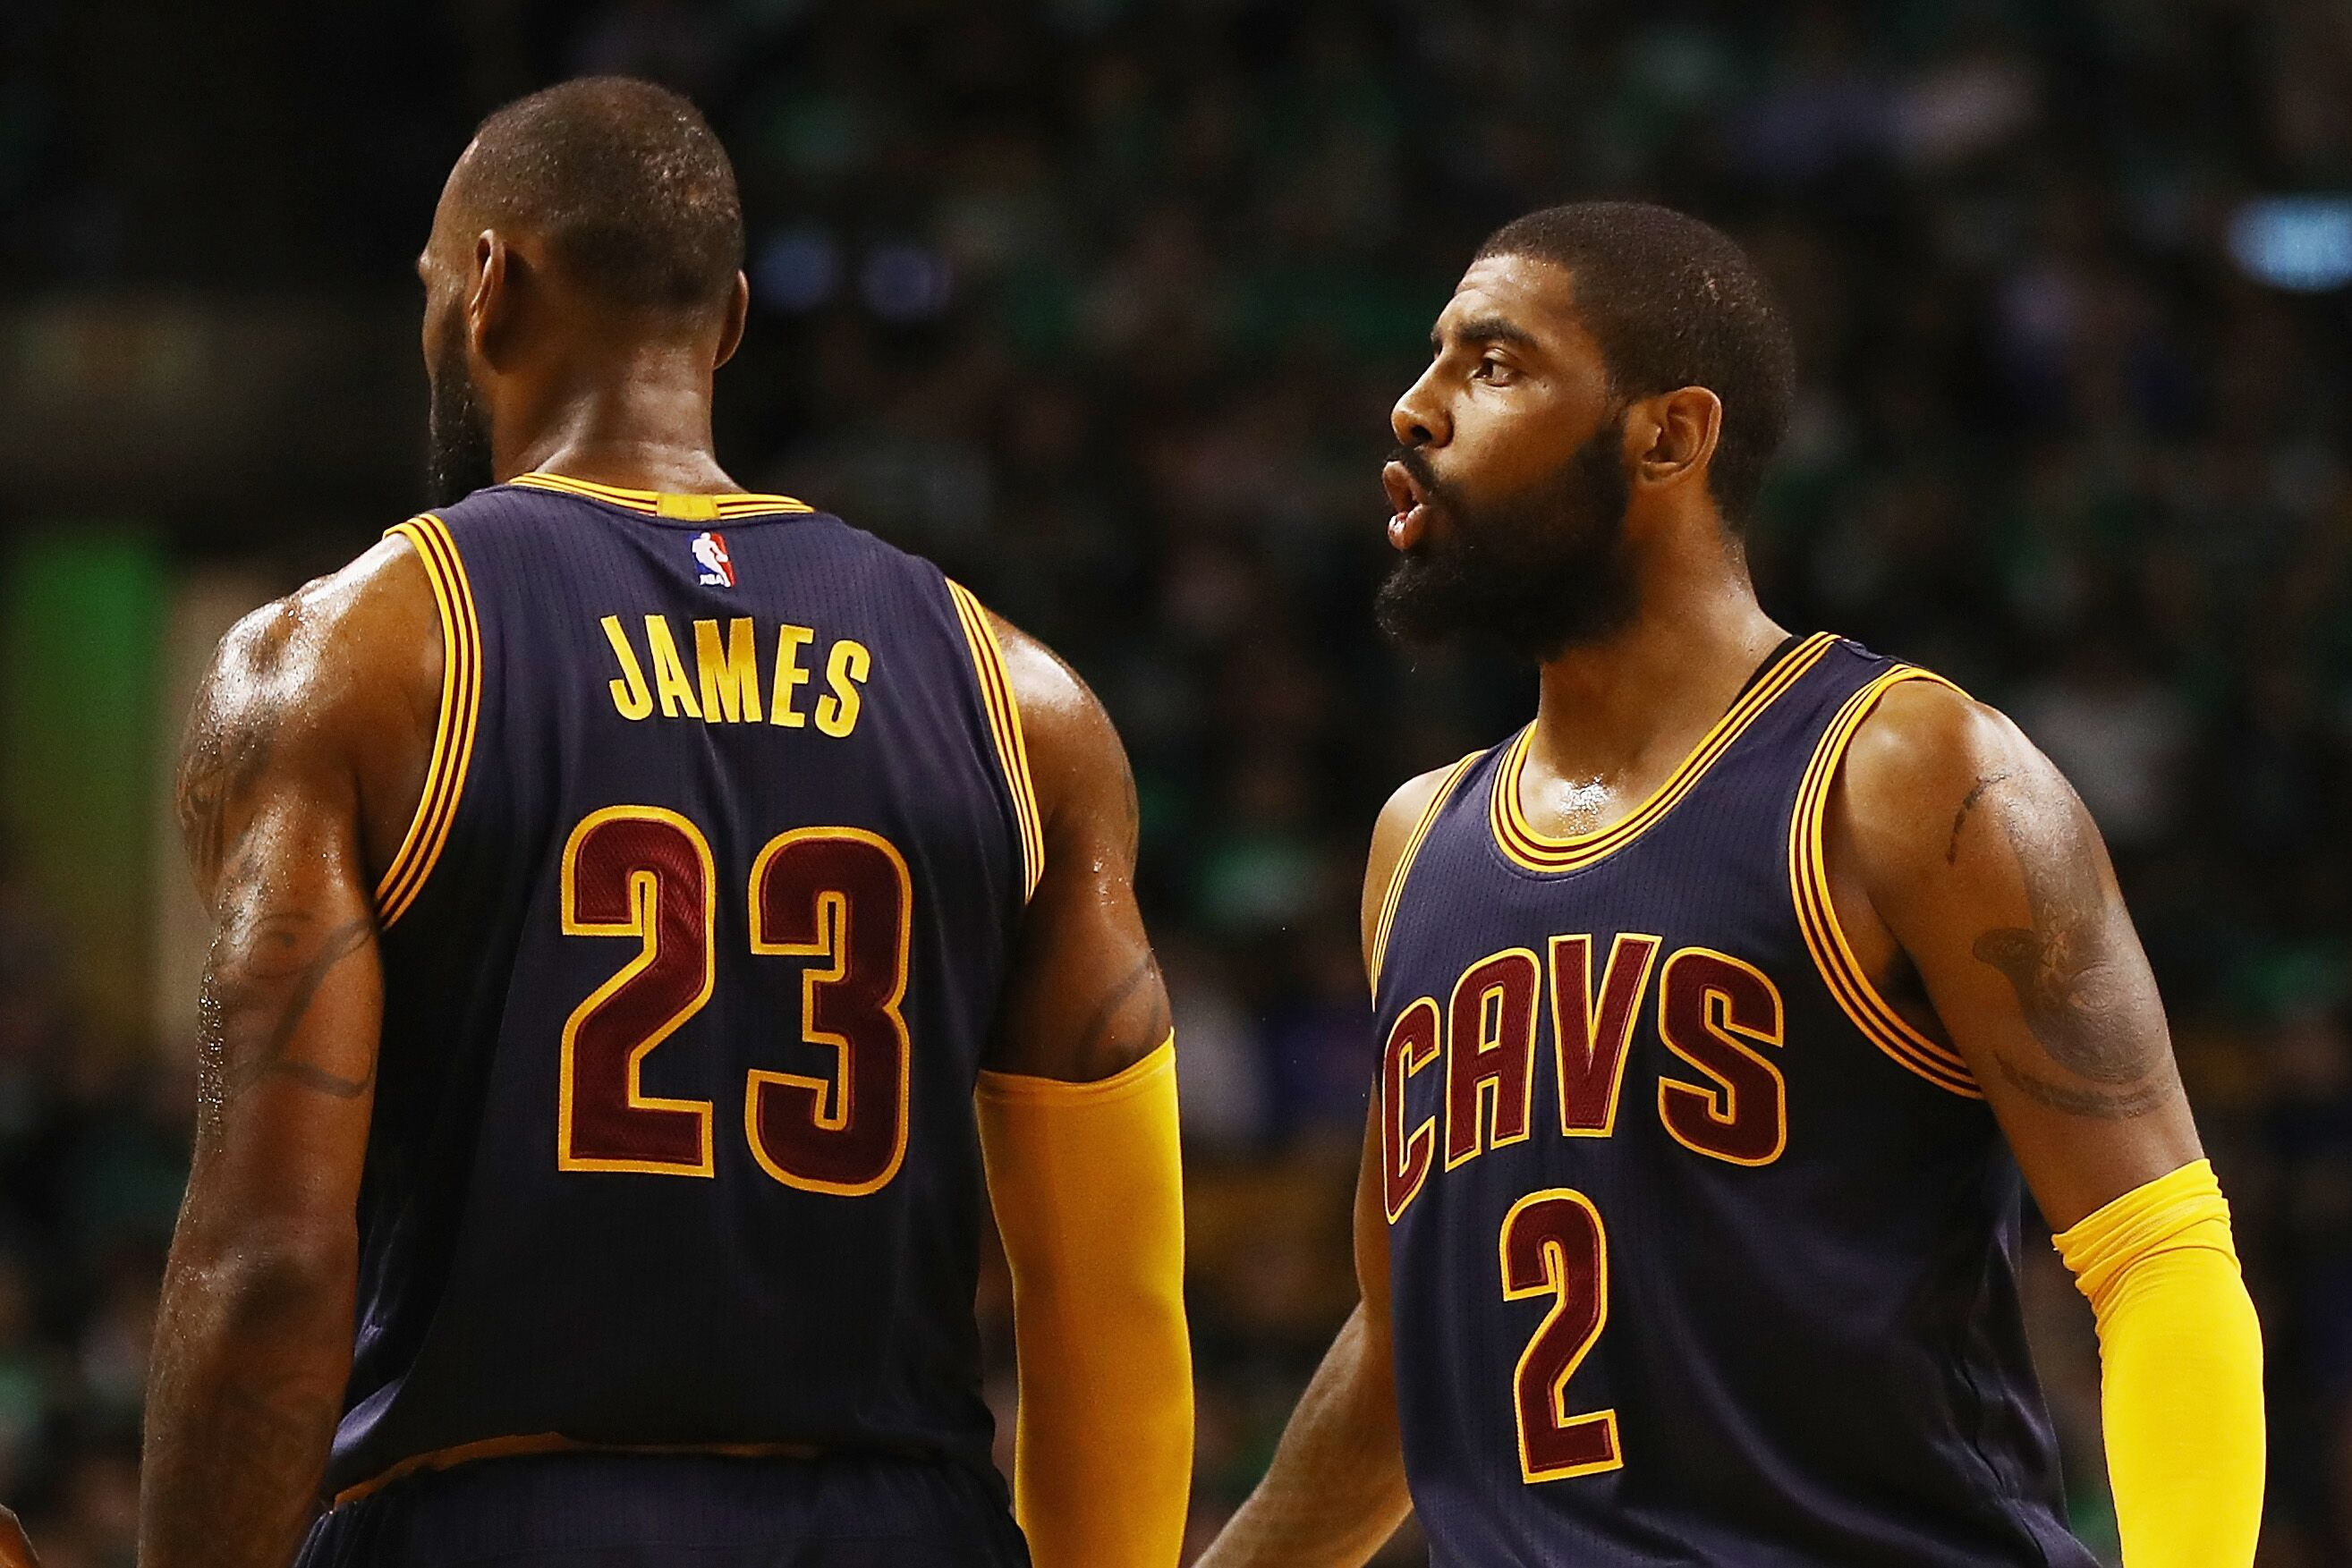 94df4da5e836 Kyrie Irving was telling Jimmy Butler to avoid Cleveland Cavaliers